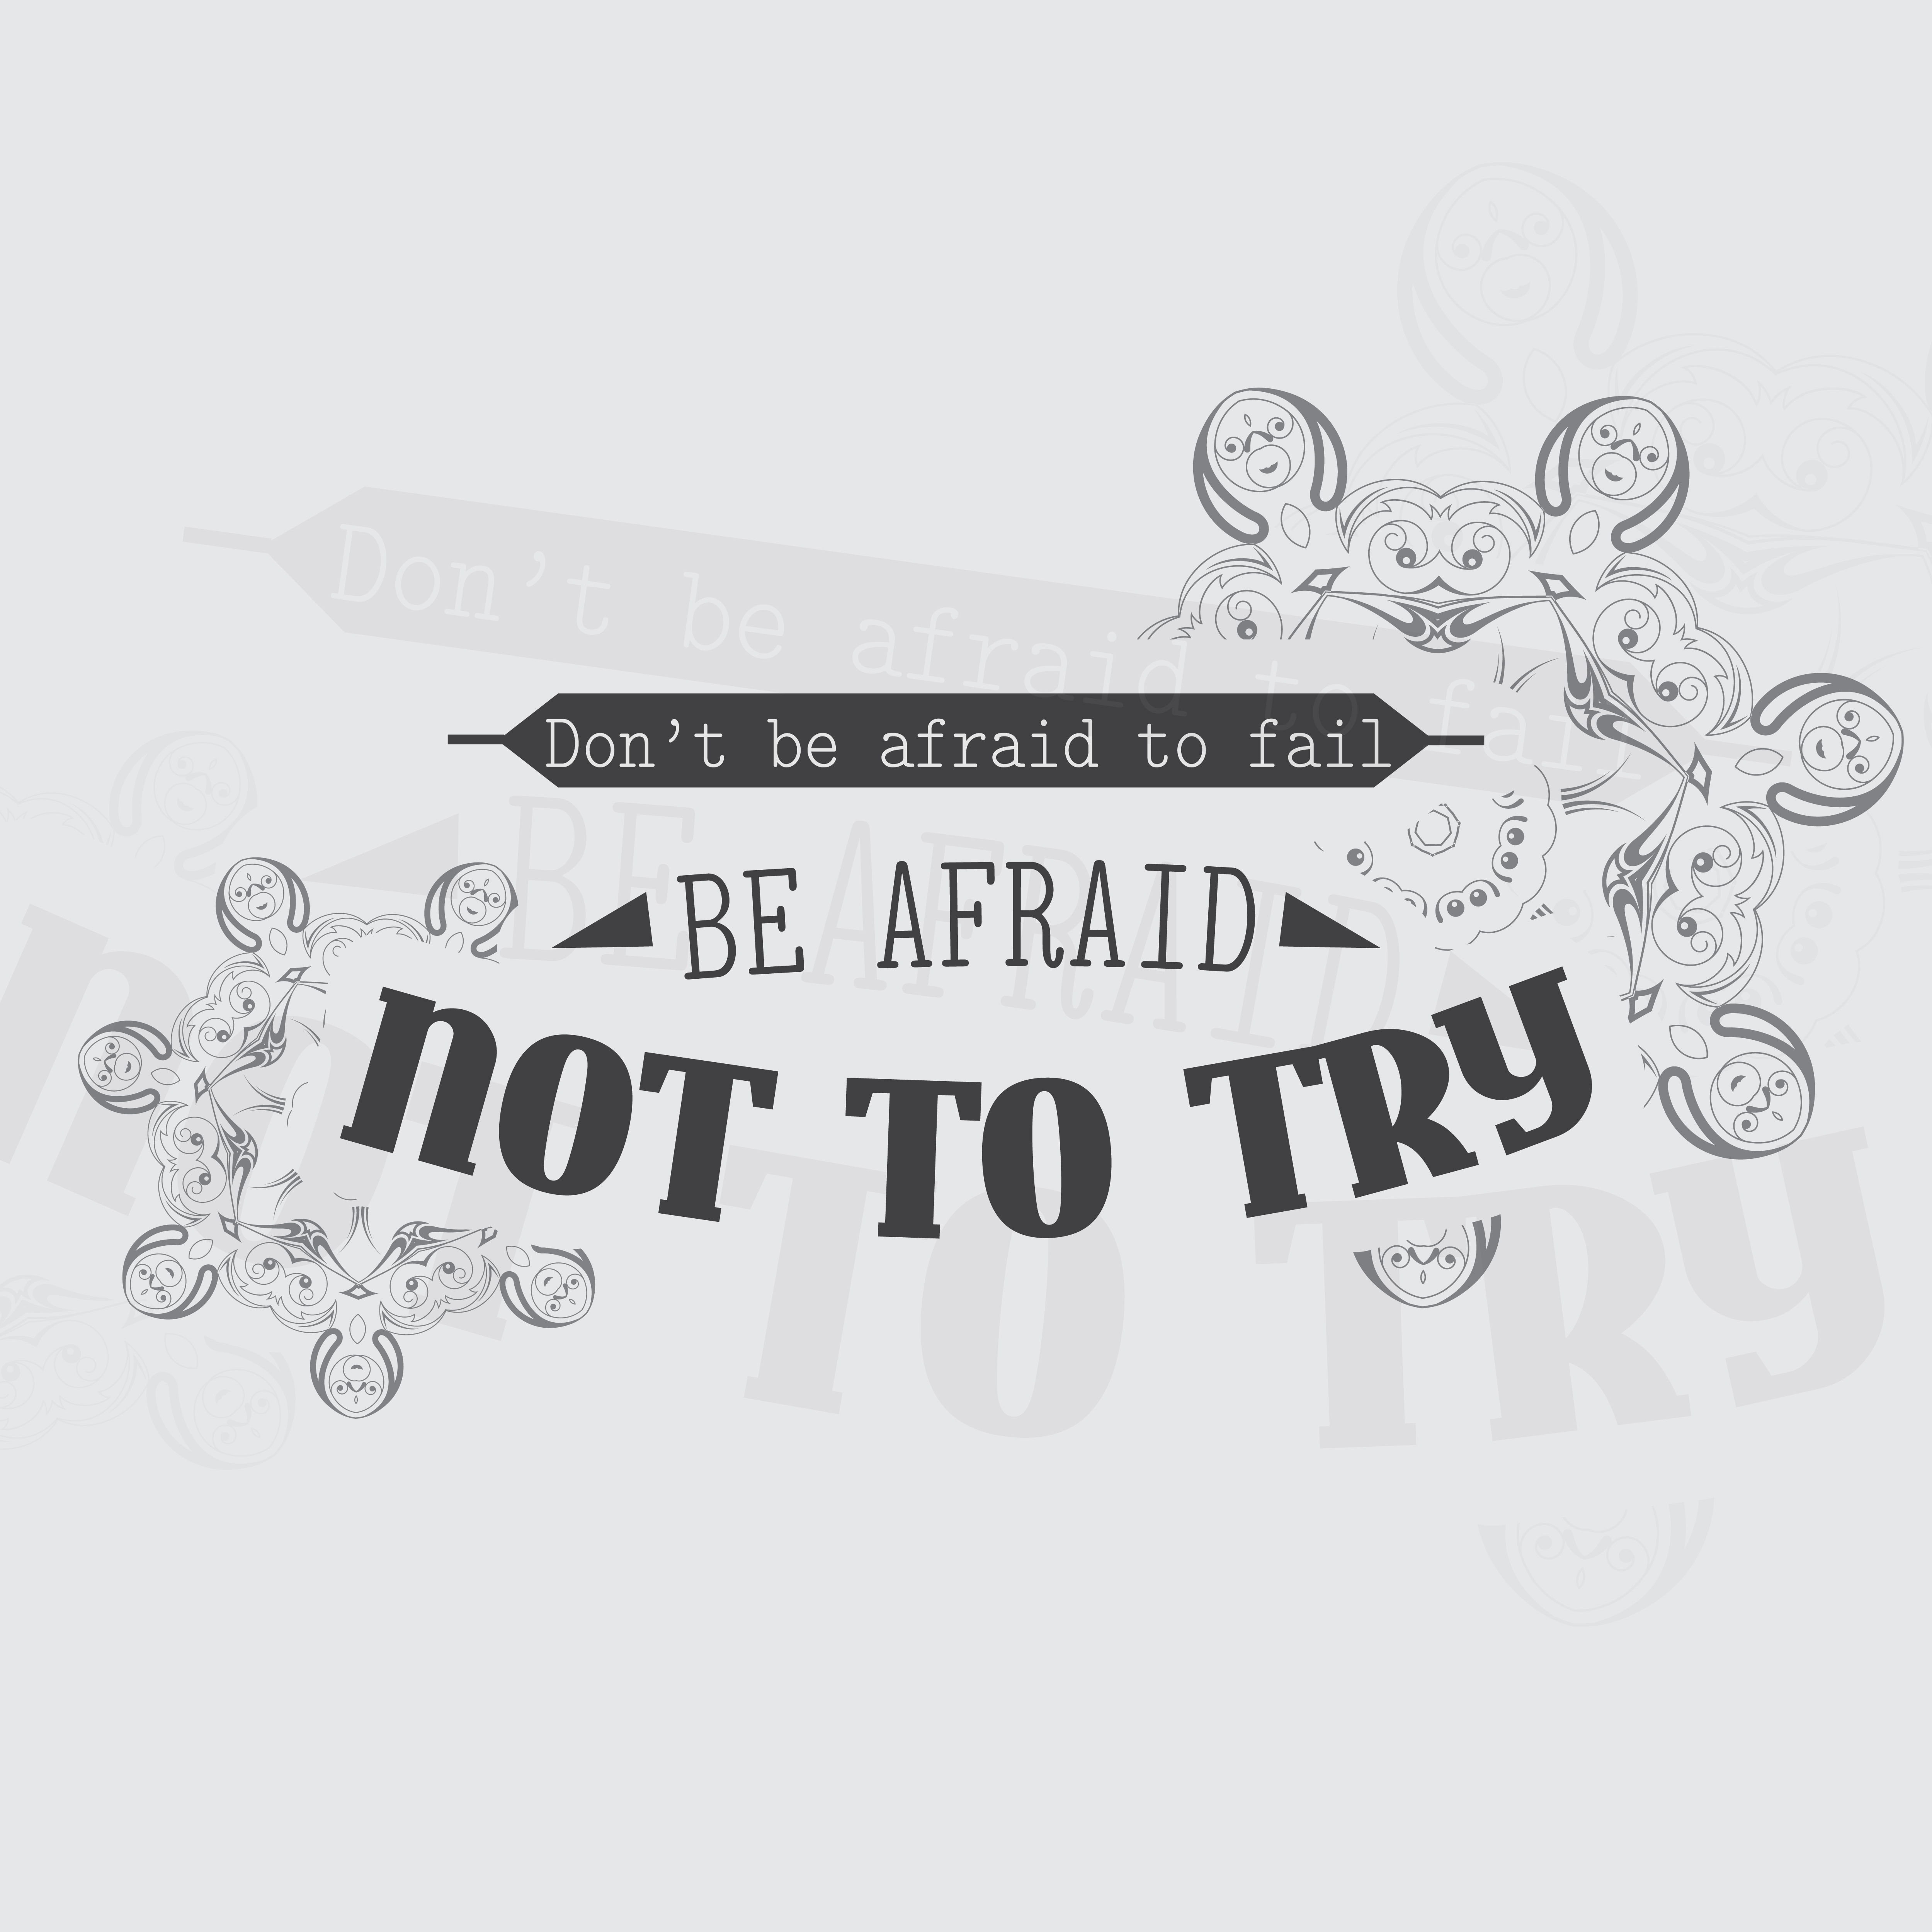 Don't be afraid to fail, Be afraid not to try. Motivational poster. Minimalist background